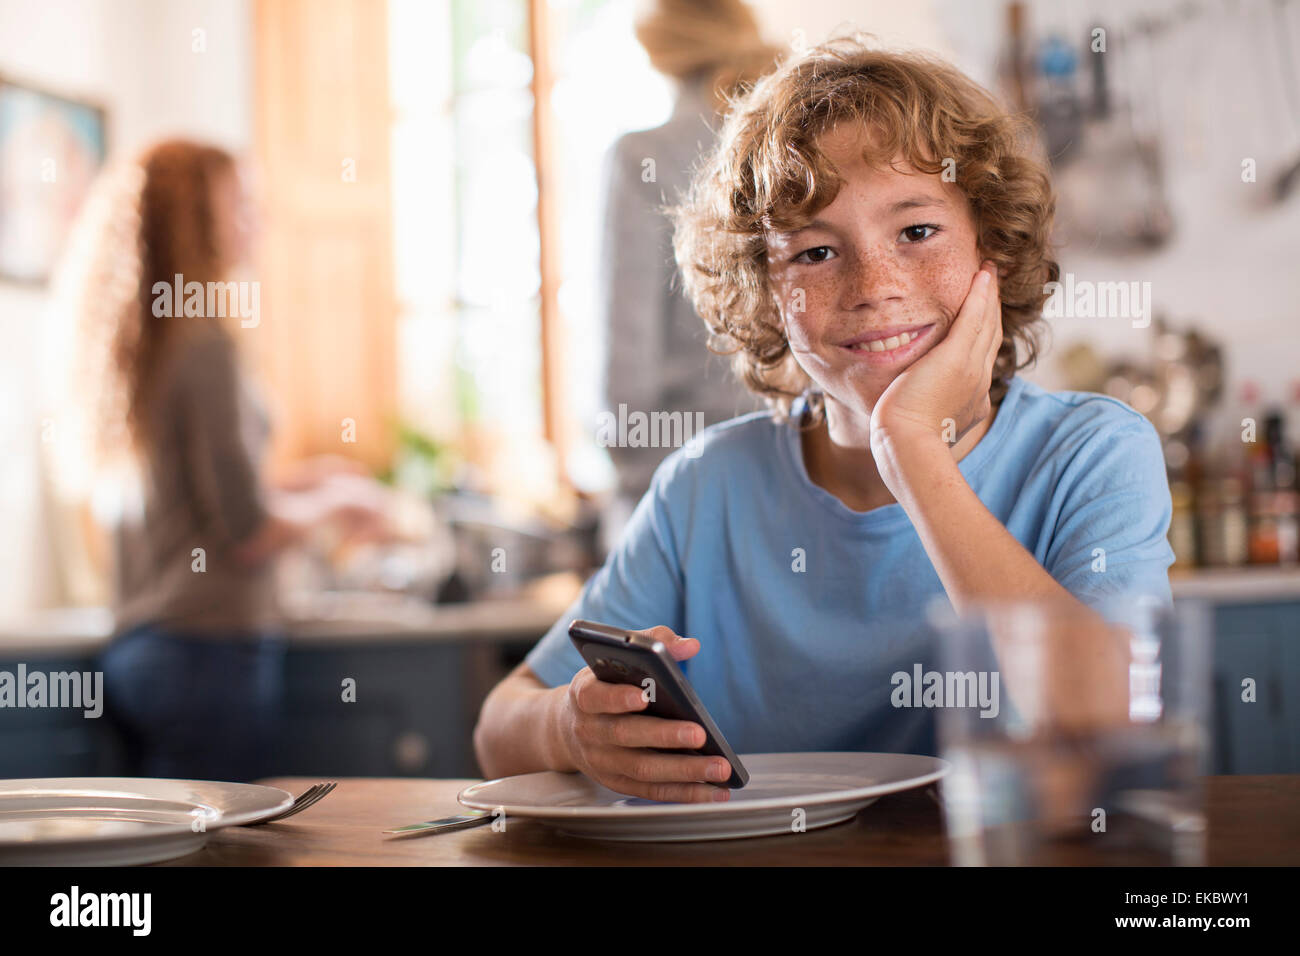 Teenage boy holding smartphone at dining table - Stock Image